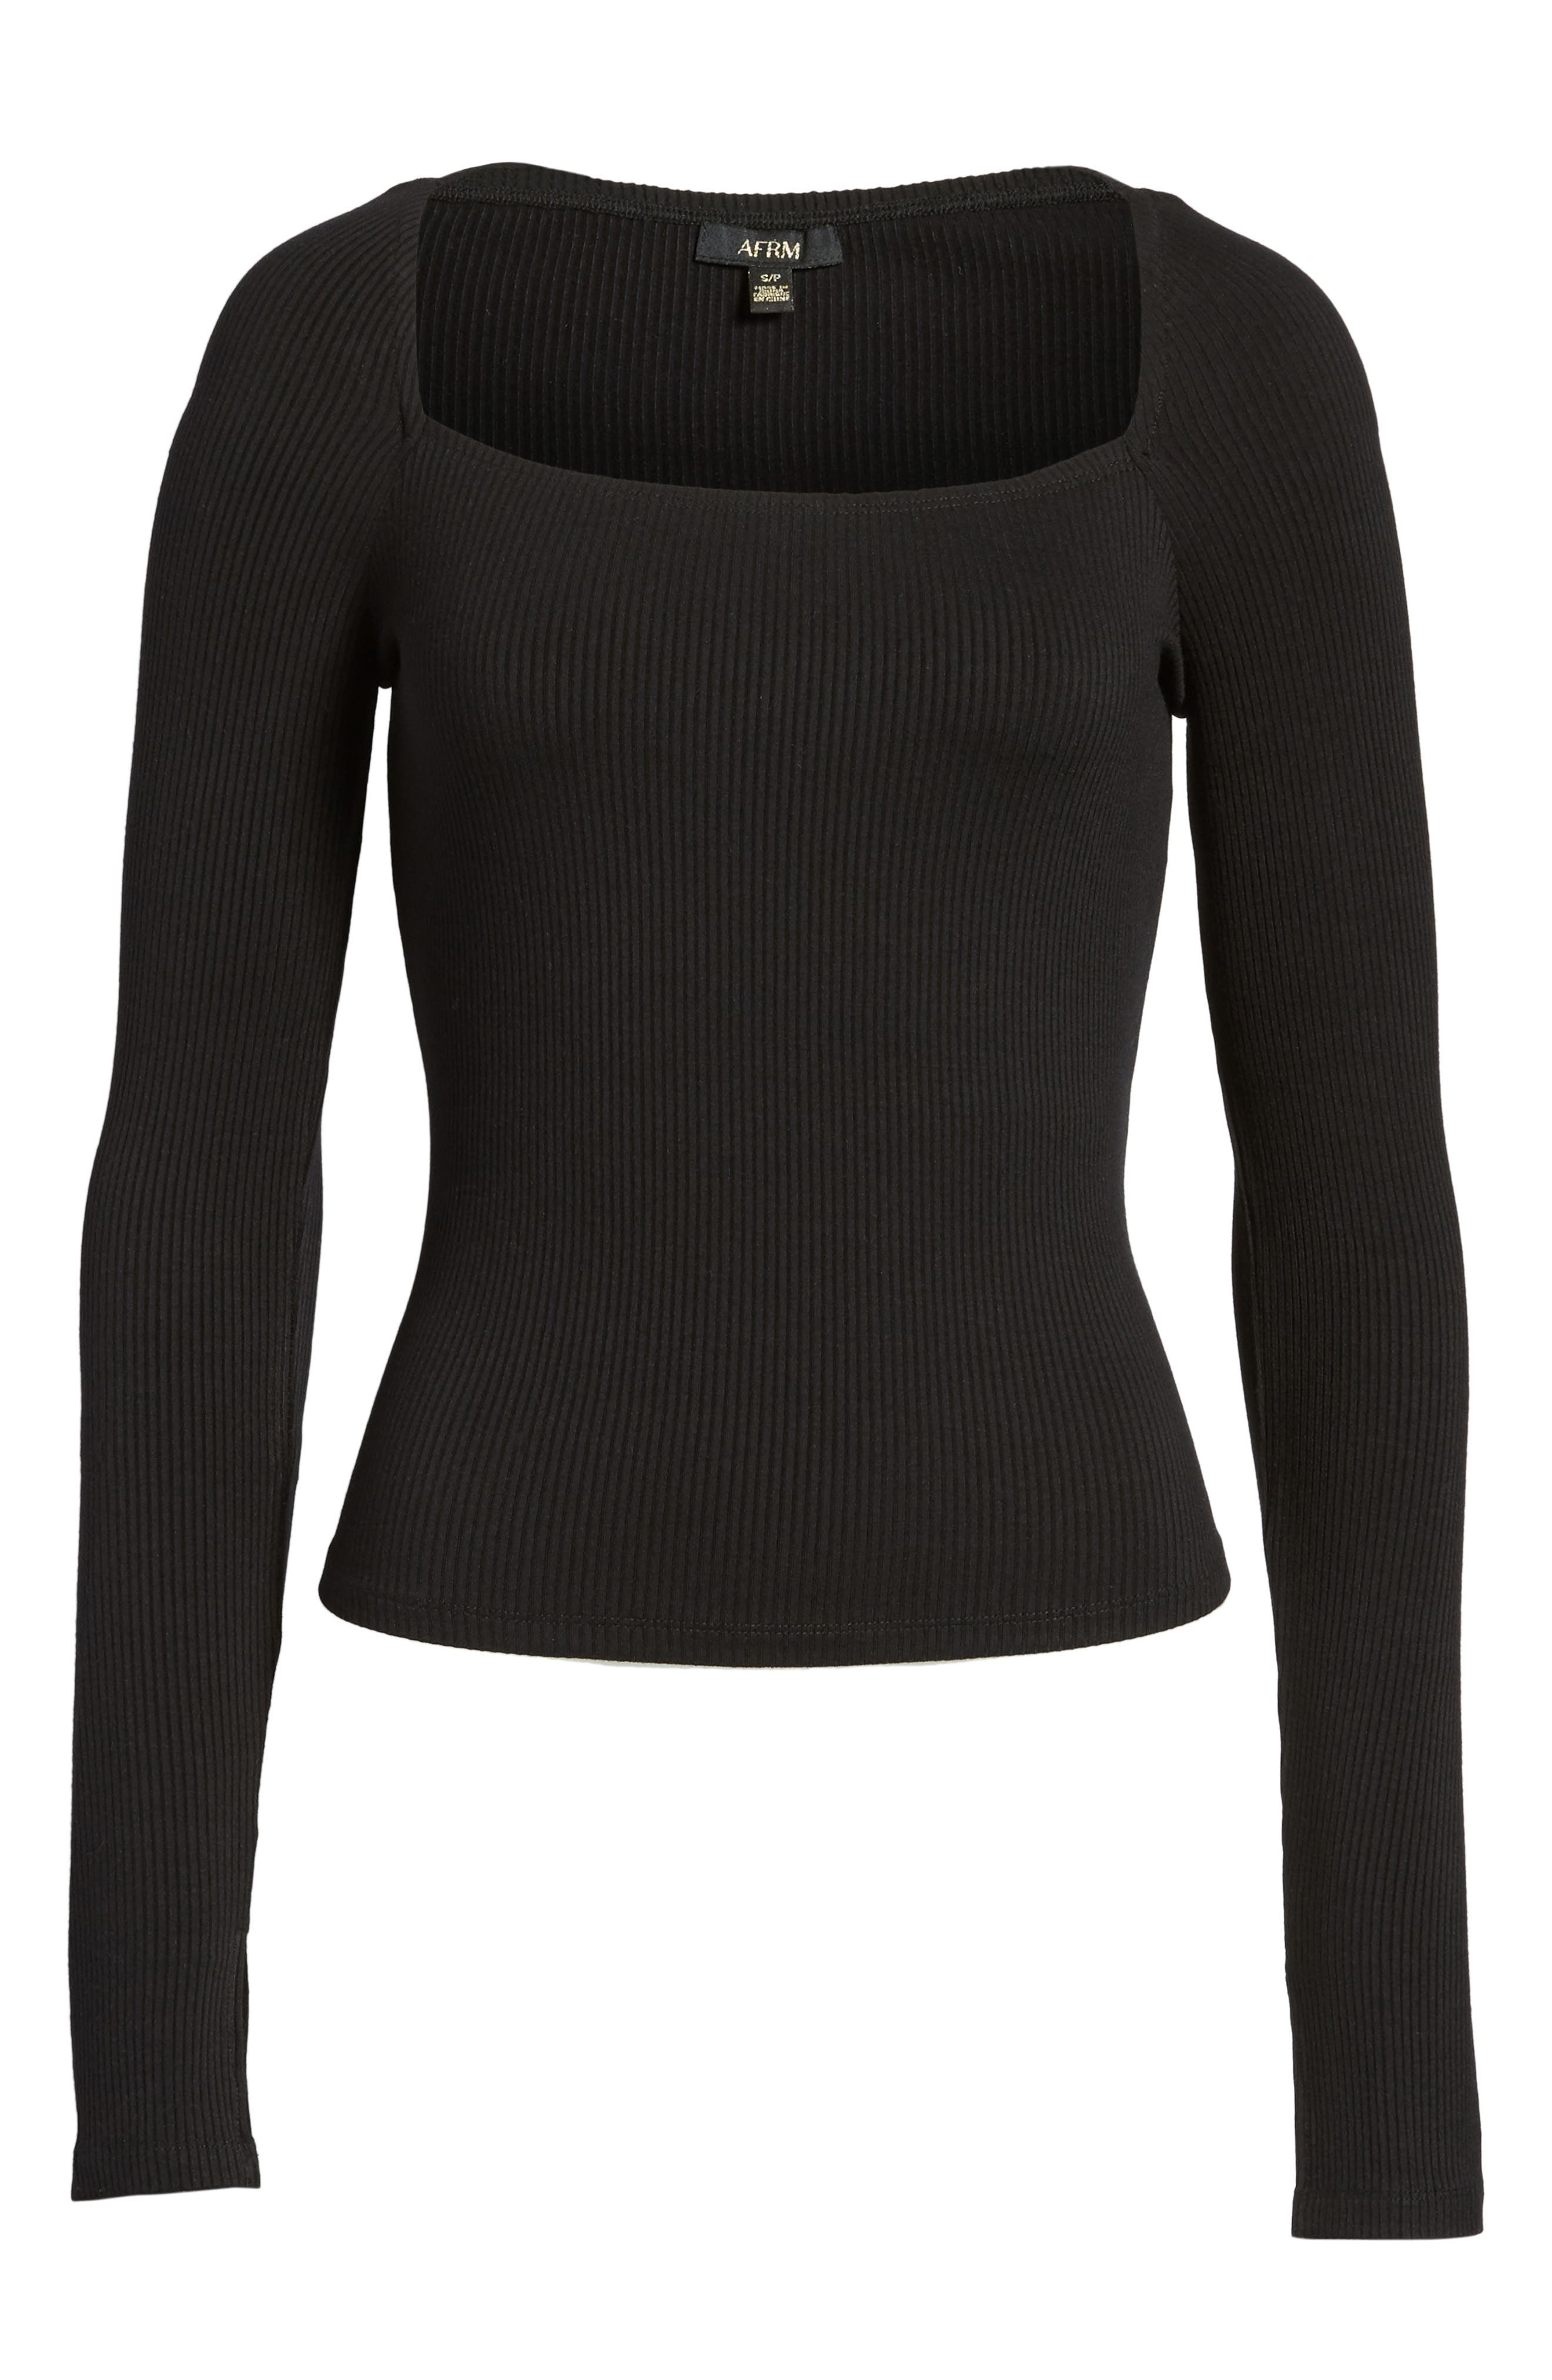 Taylor Ribbed Top,                             Alternate thumbnail 7, color,                             Noir